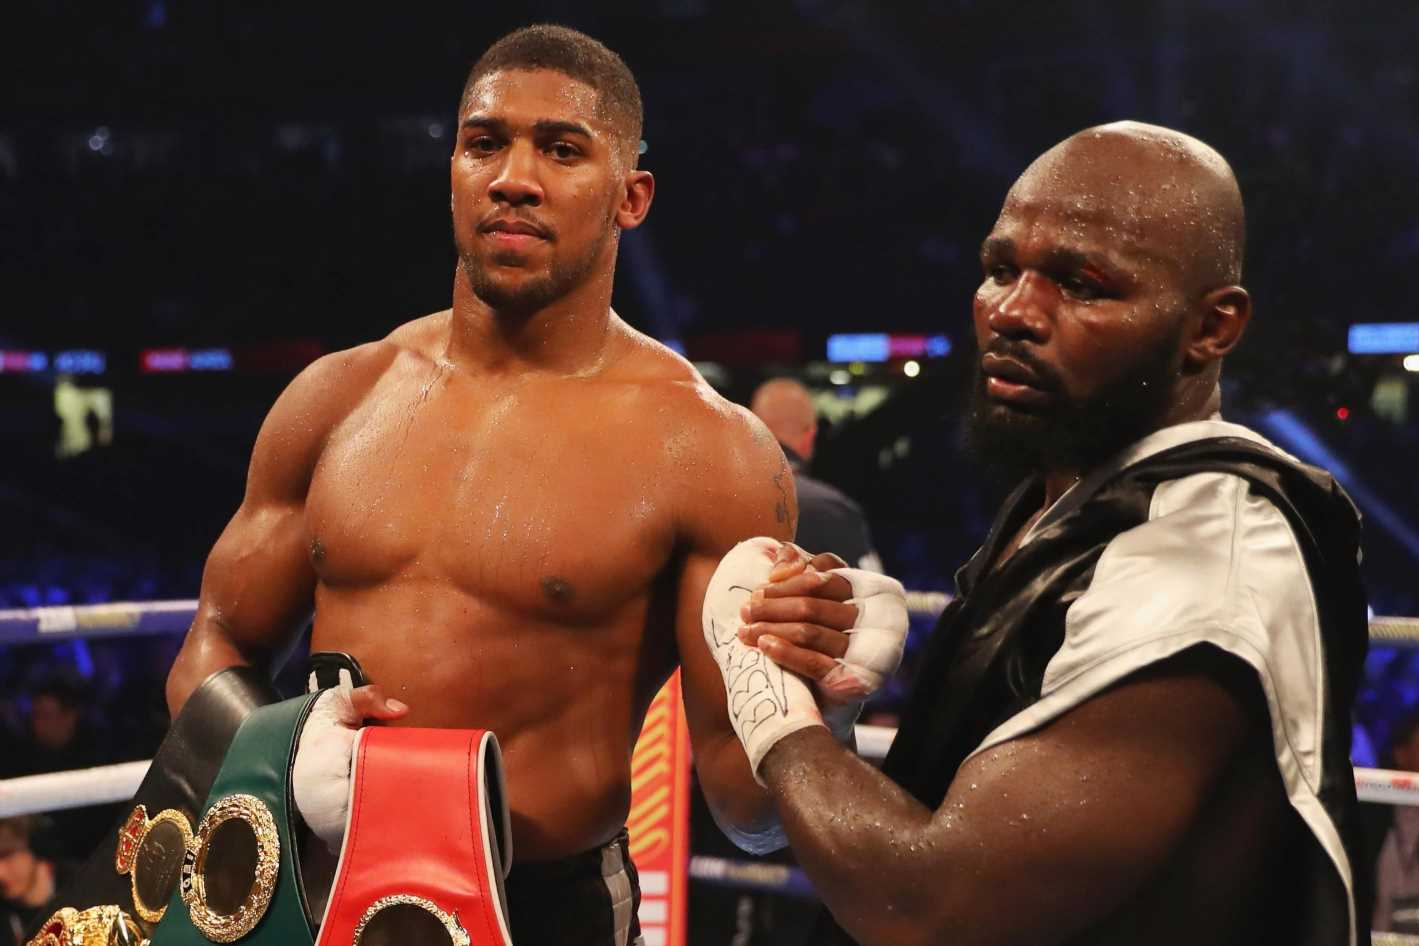 Anthony Joshua called out by Carlos Takam, who says 'there is unfinished business' after 2017 loss which 'still hurts'